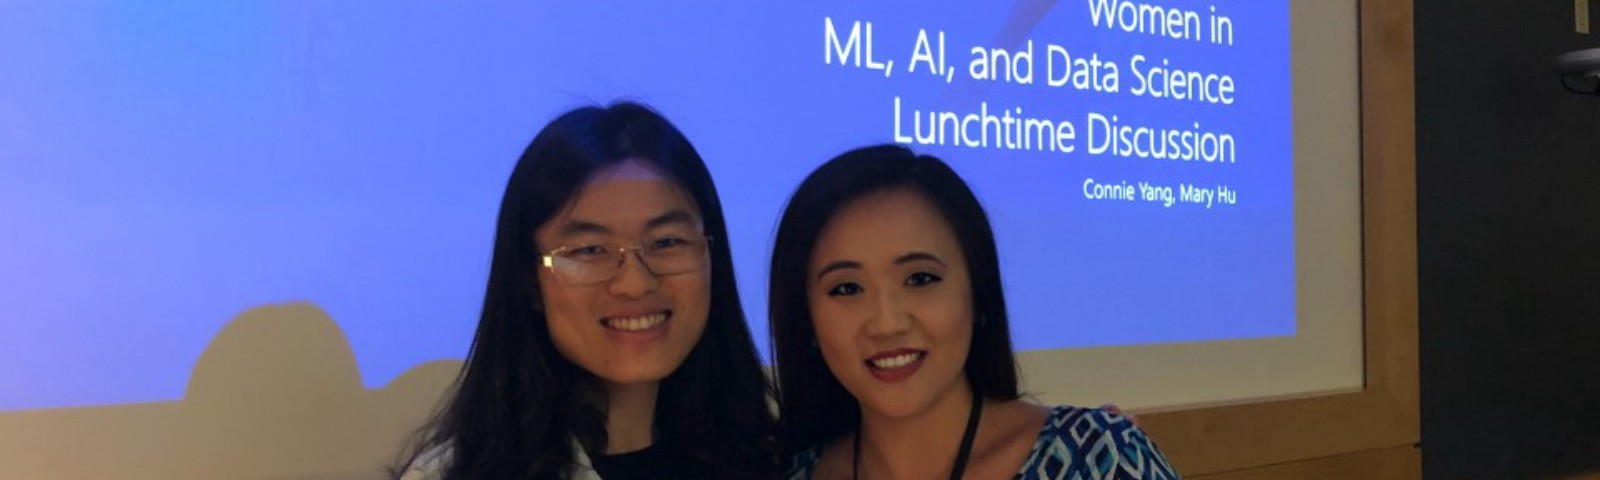 Mary Hu and Connie Yang at first WiDS Workshop for MLADS 2018 Conference.